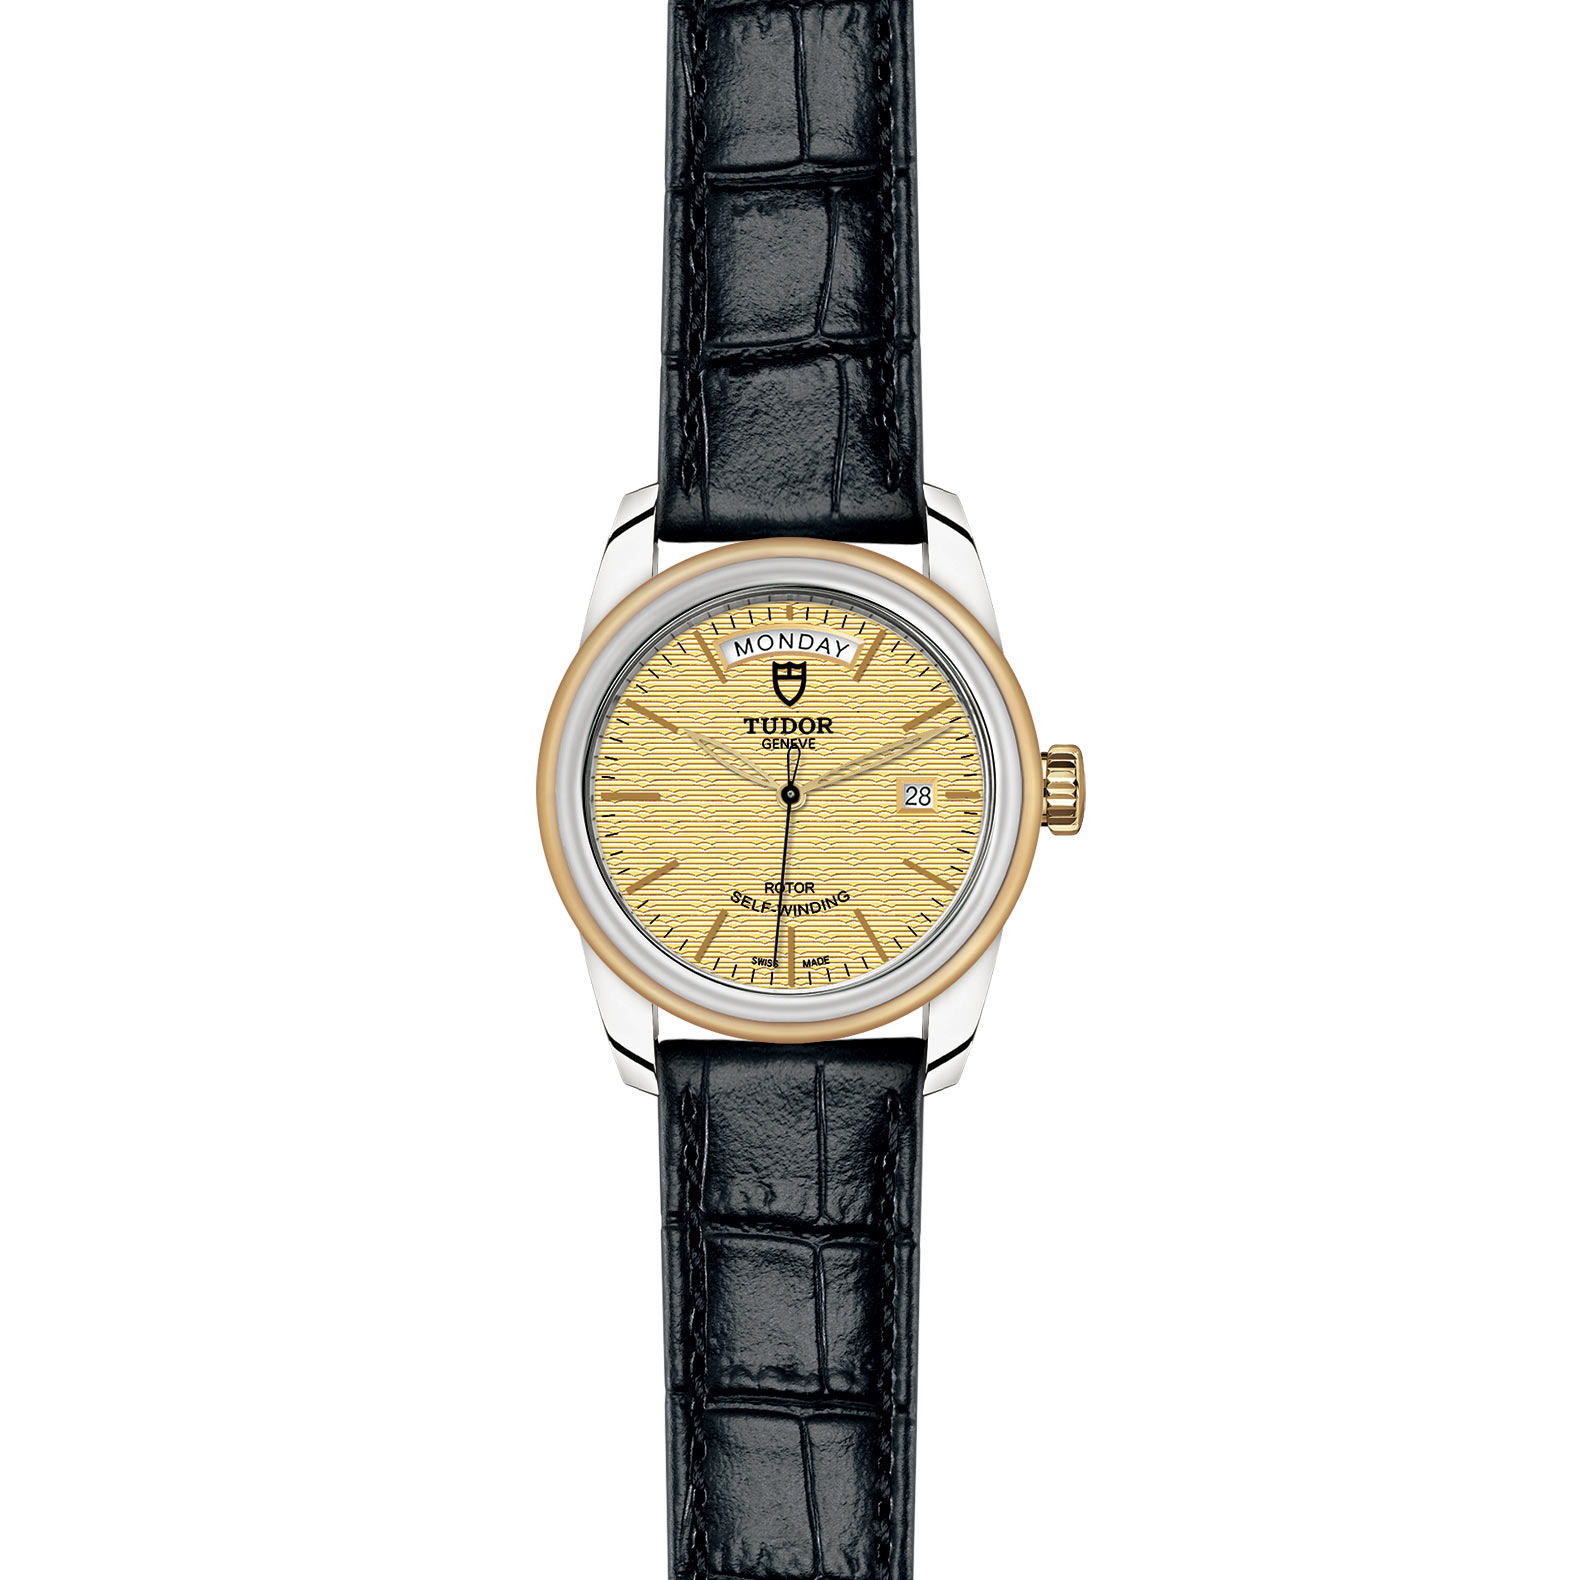 TUDOR Glamour Date Day M56003 0010 Frontfacing